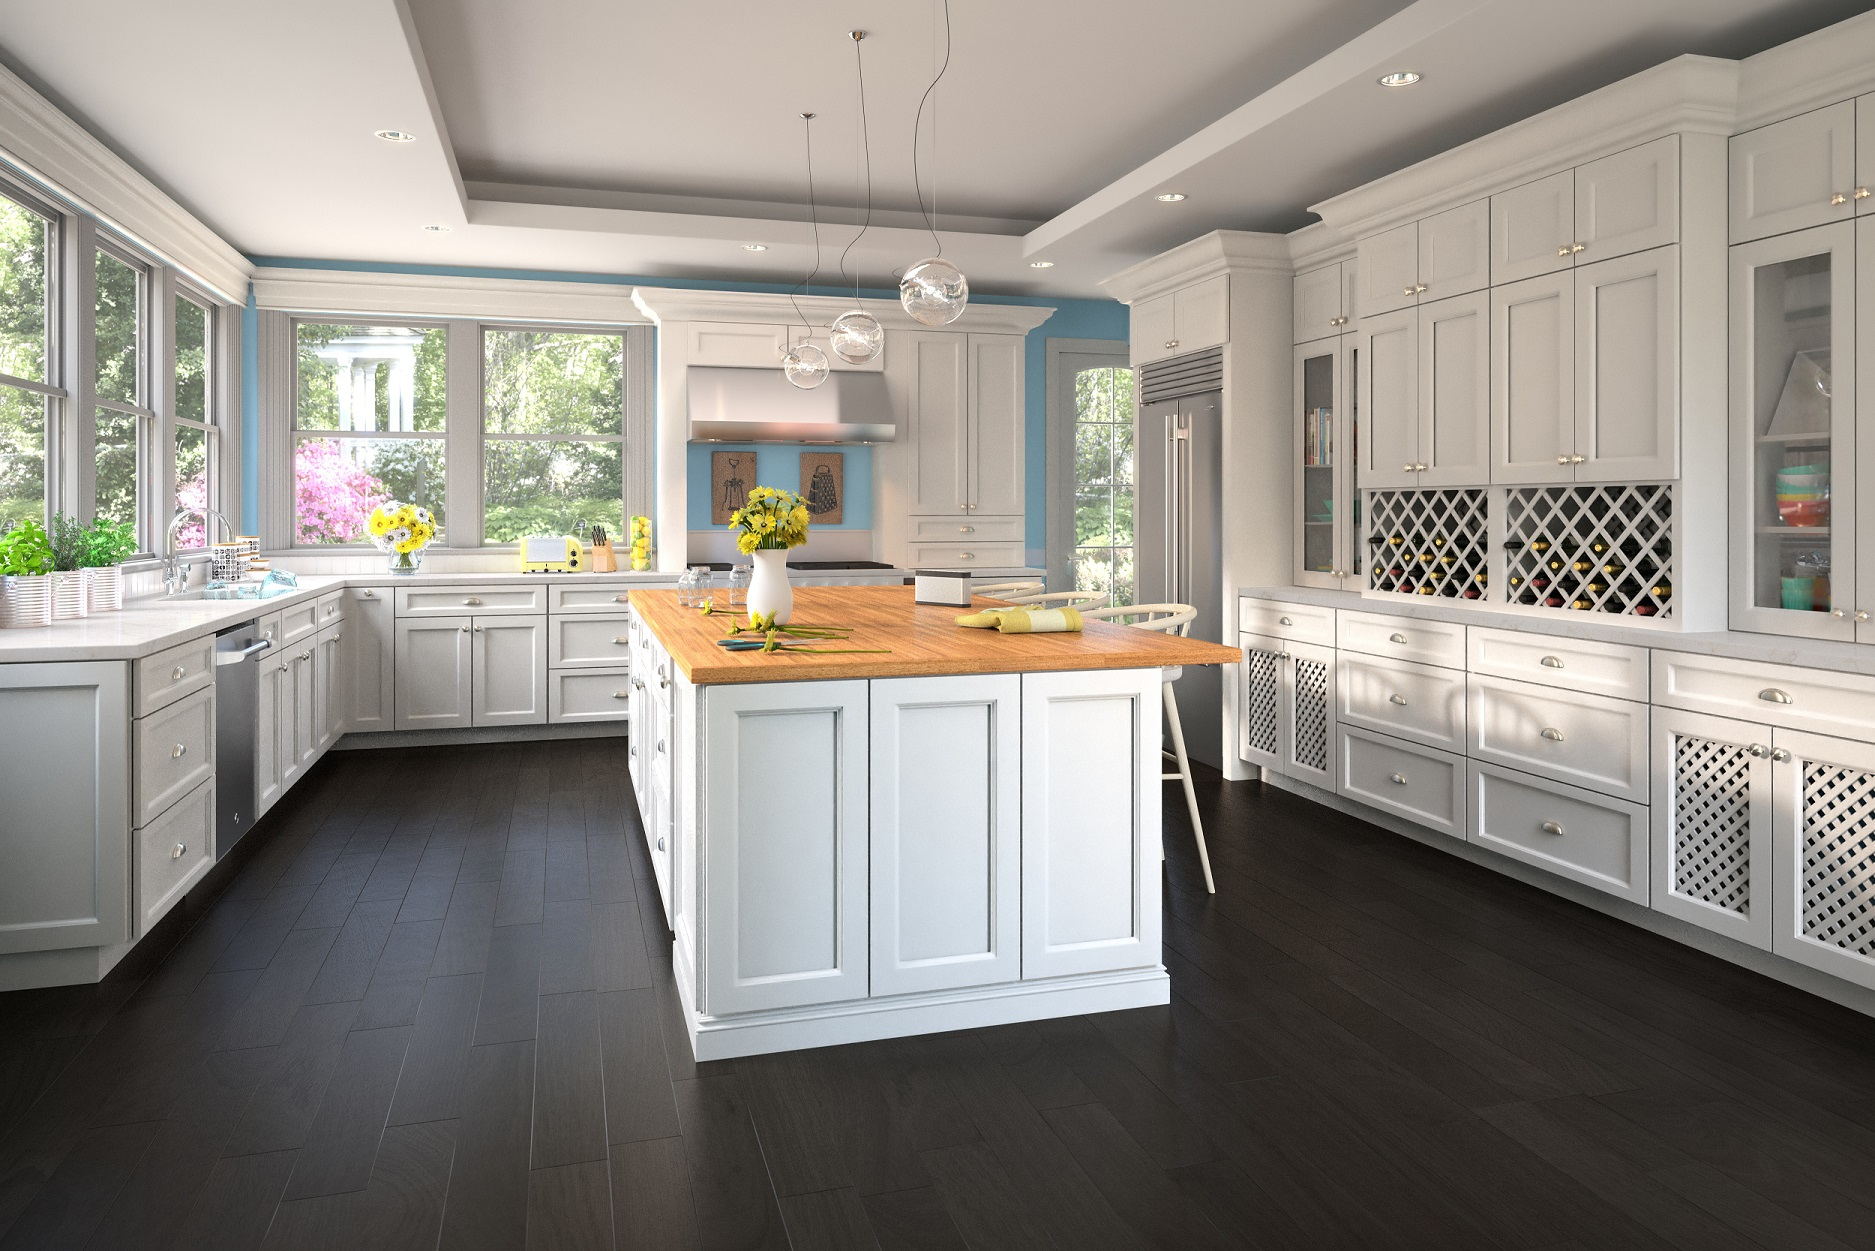 Best Kitchen Gallery: Providence White Pre Assembled Kitchen Cabi S The Rta Store of Pre Assembled Kitchen Cabinets on rachelxblog.com